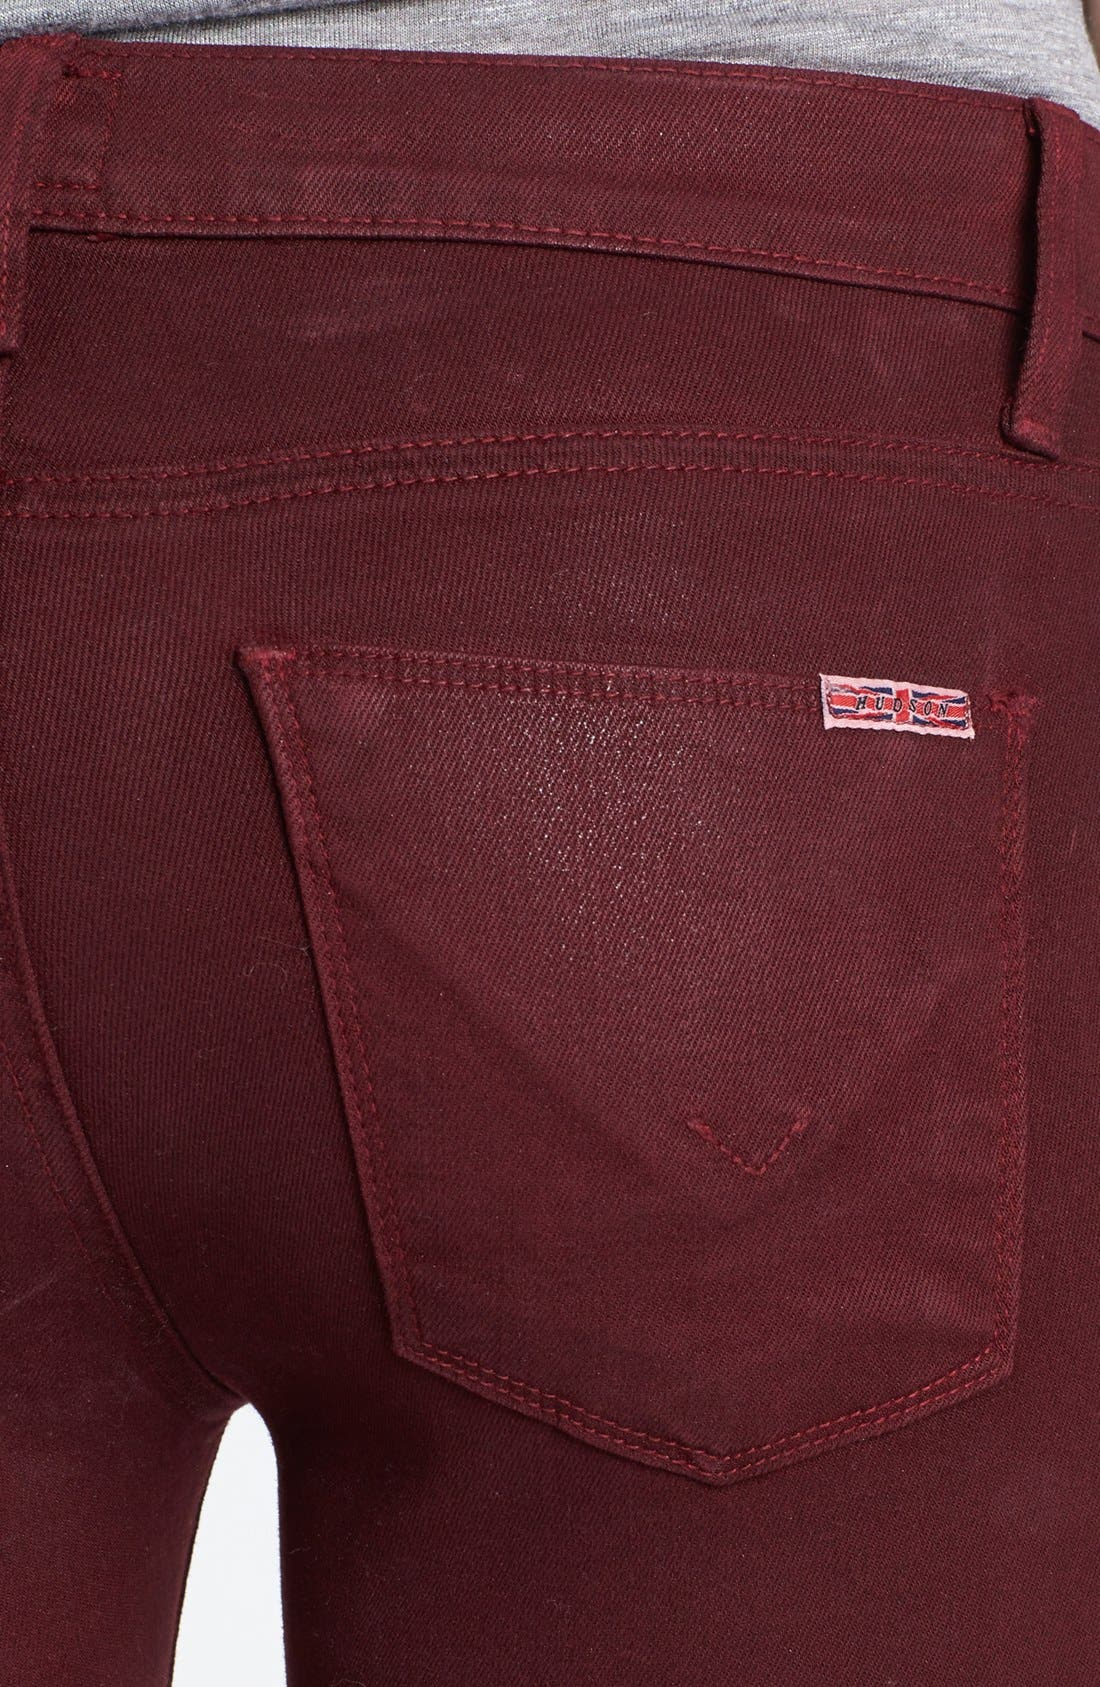 Alternate Image 3  - Hudson Jeans 'Krista' Super Skinny Jeans (Crimson Wax)